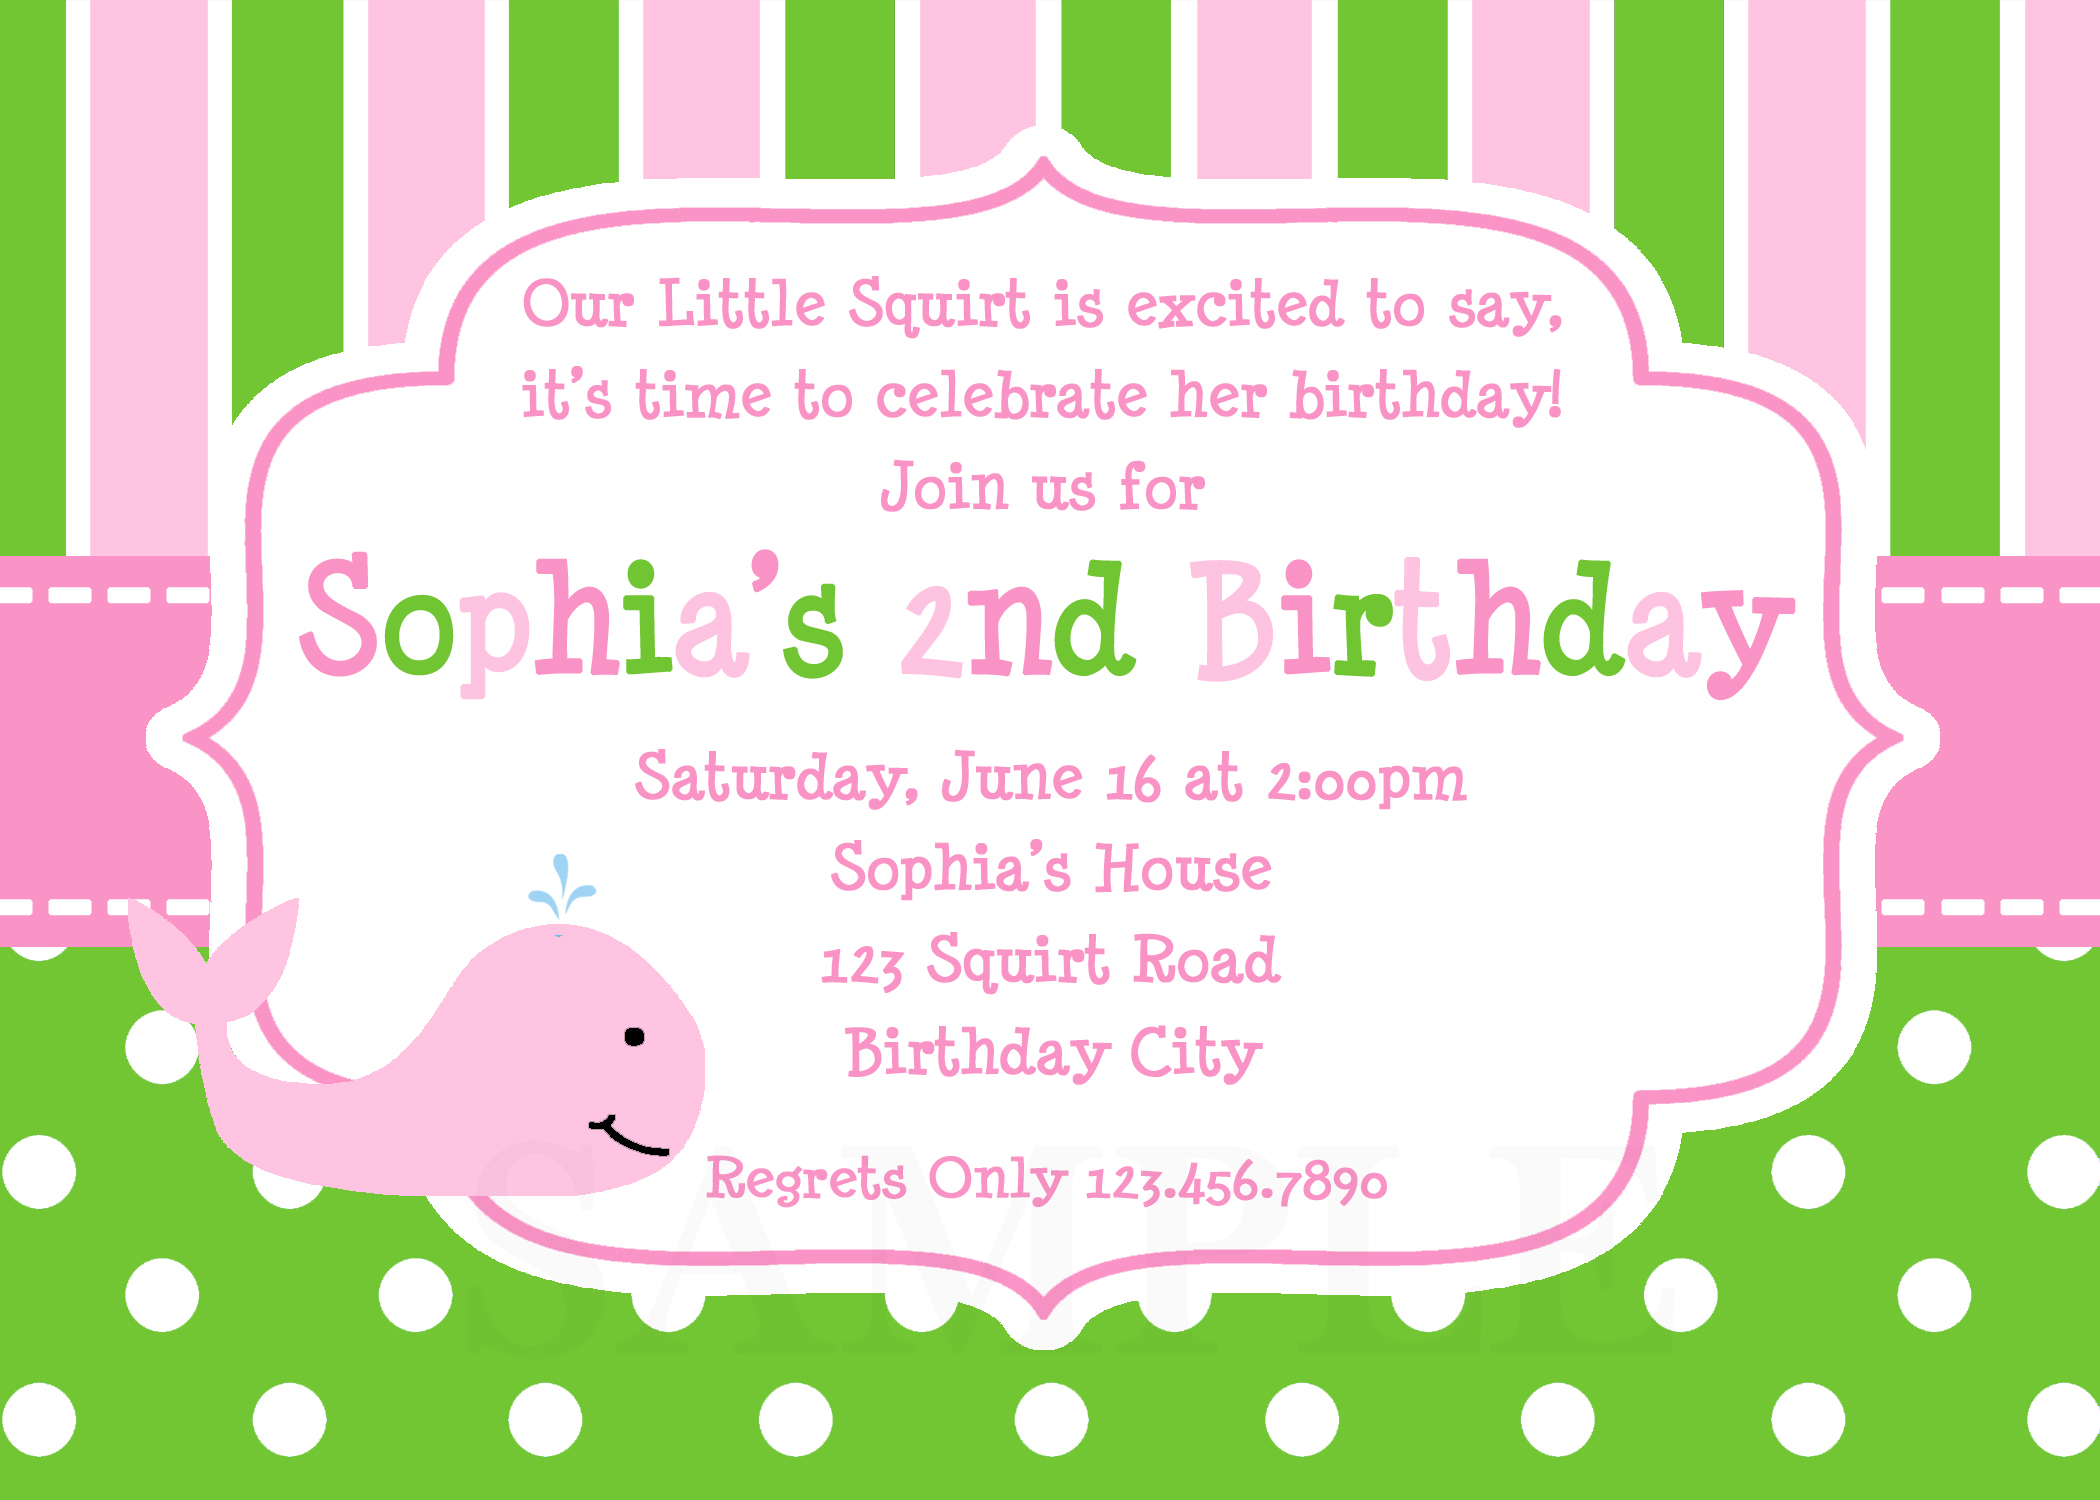 design birthday party invitations ; birthday-card-custom-birthday-invitations-invites-how-to-make-birthday-party-invitations-cute-invitation-card-designs-for-birthday-party-ideas